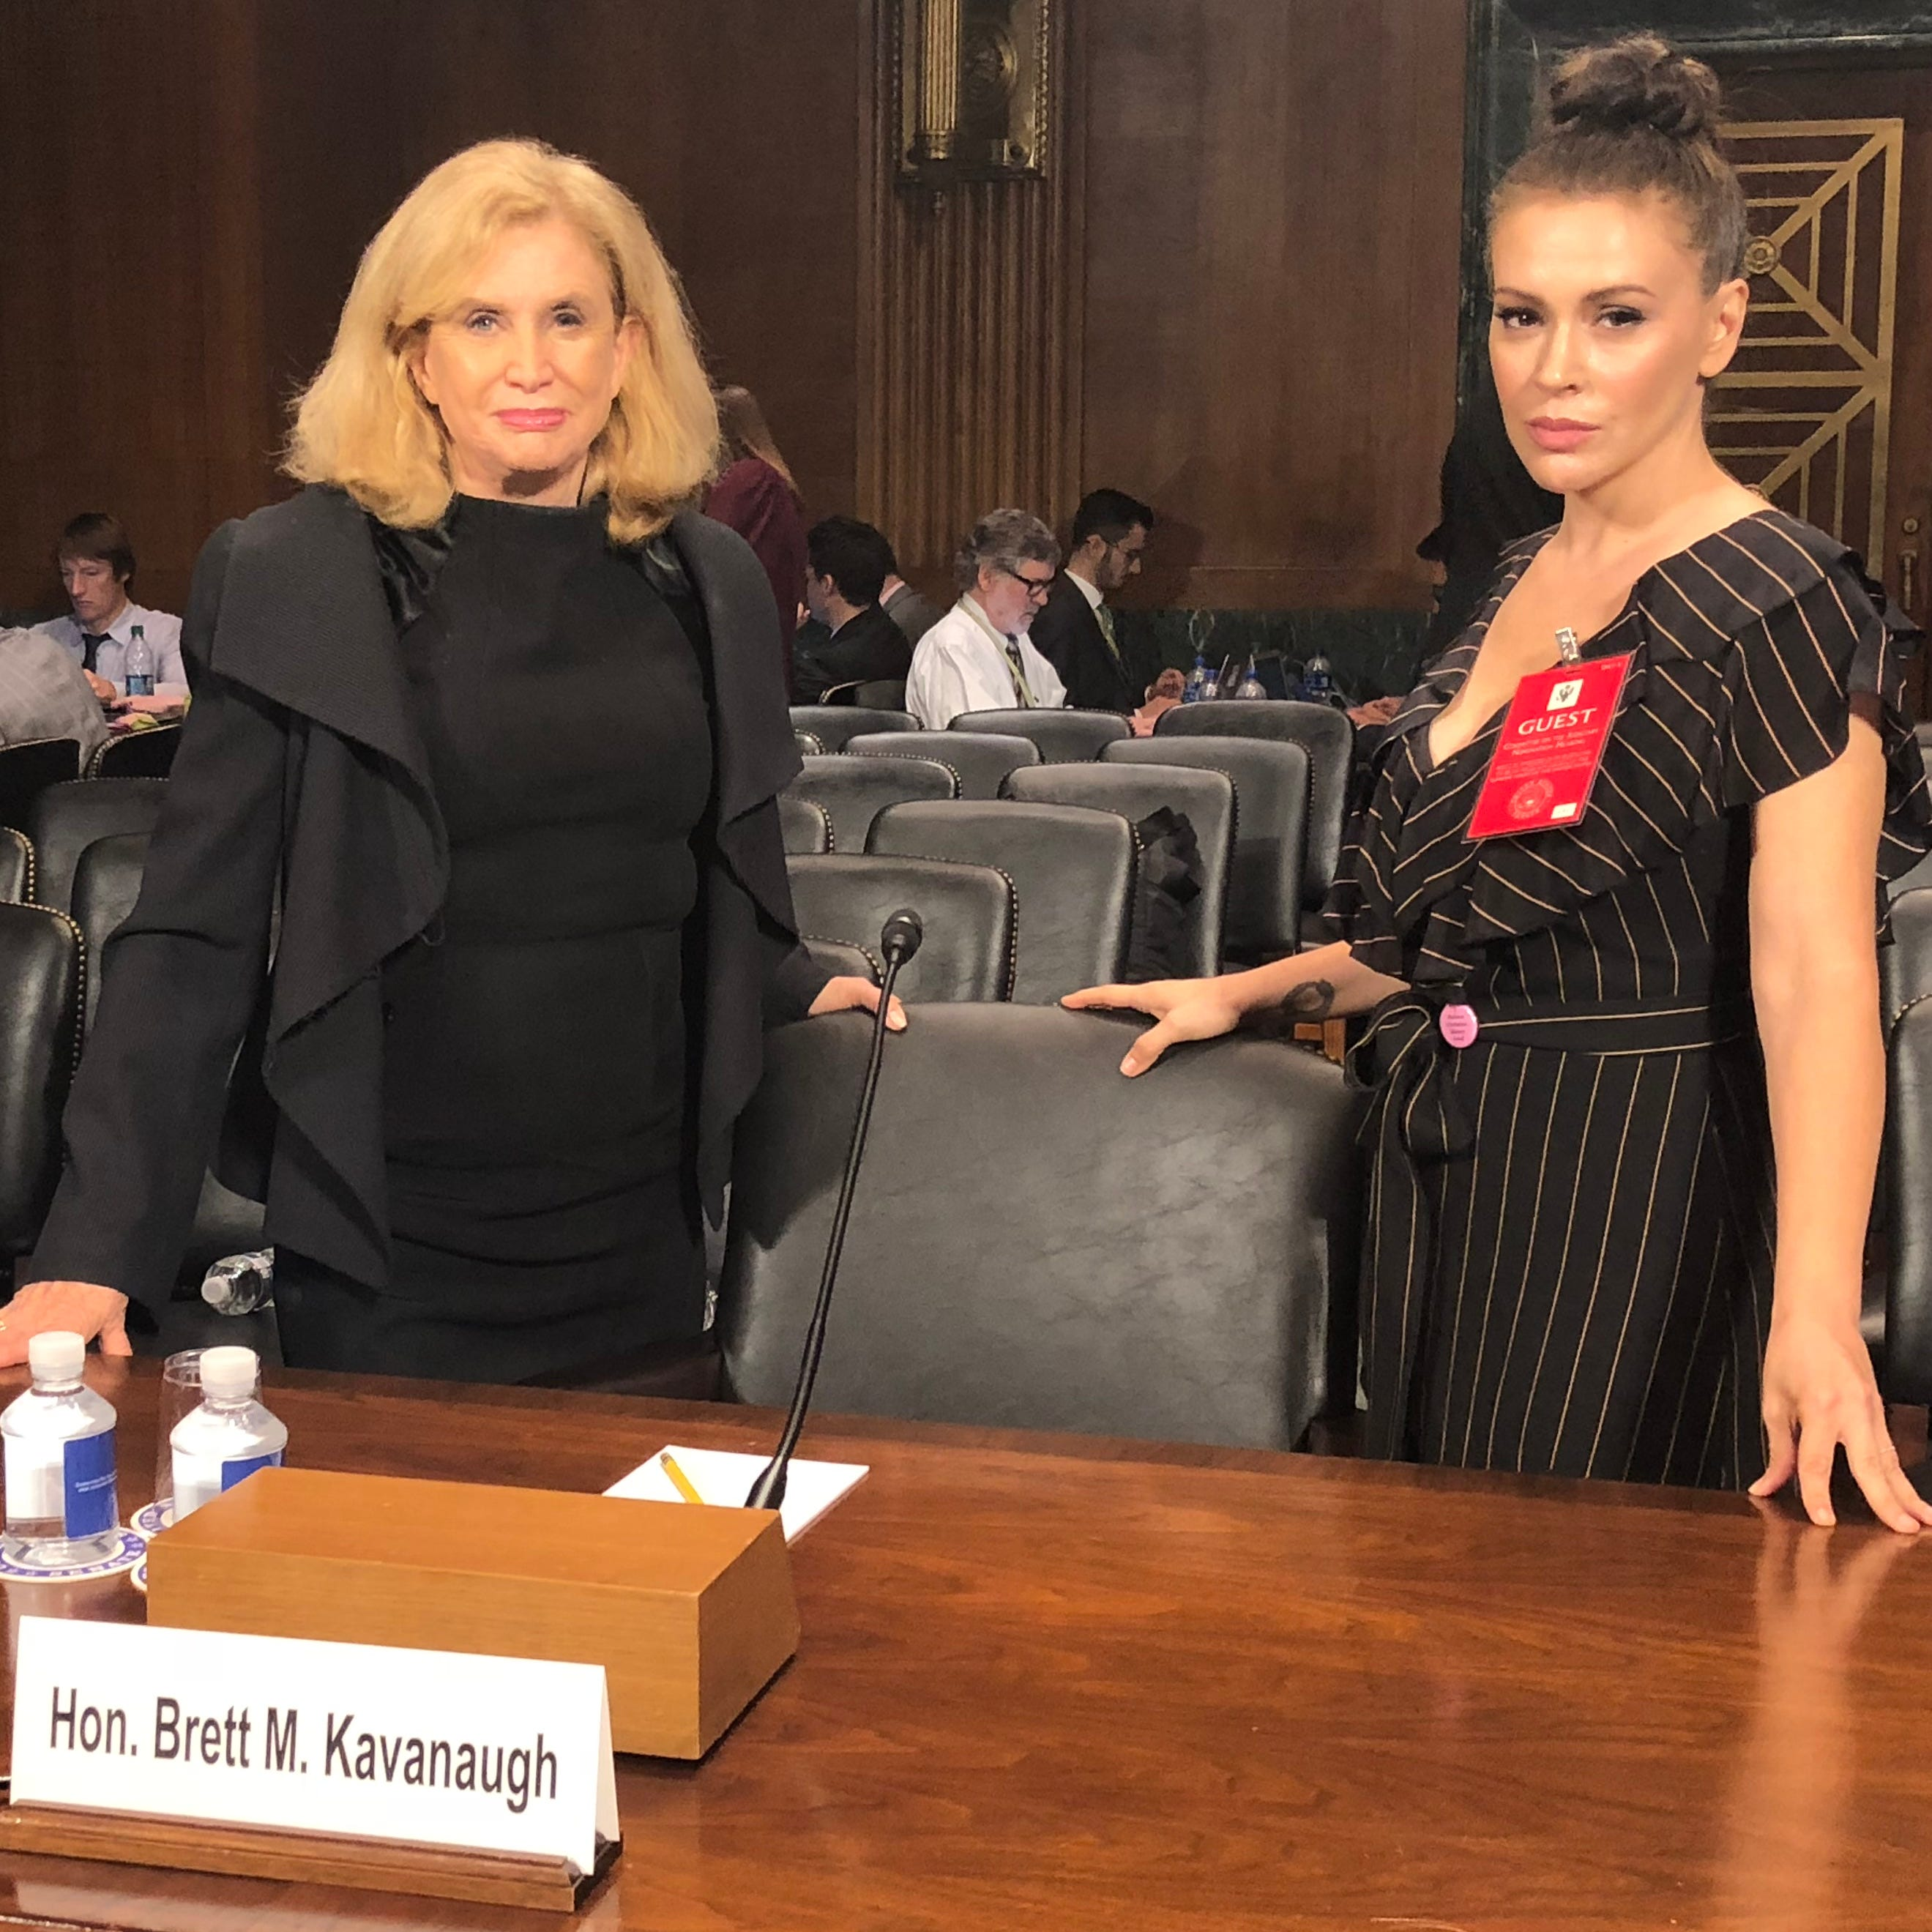 Rep. Carolyn Maloney, D-N.Y., left, and actress and activist Alyssa Milano, on Sept. 27, 2018 in the Senate Judiciary Committee hearing room, where now-Justice Brett Kavanaugh answered allegations that he sexually assaulted Christine Blasey Ford in high school.